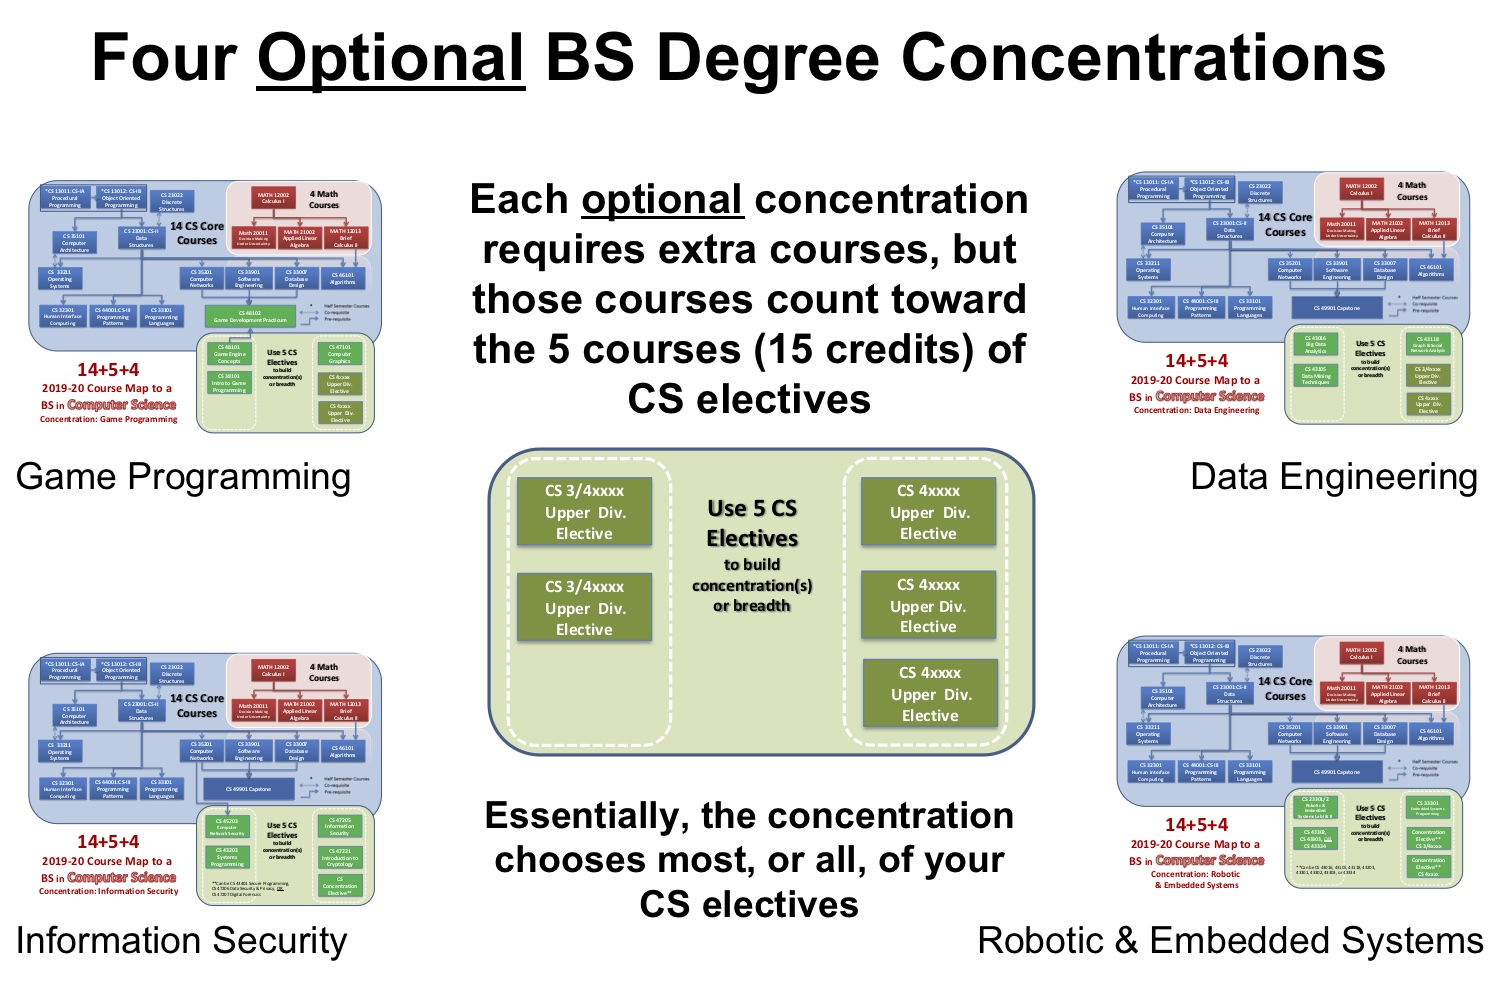 Four Optional BS Degree Concentrations Replacing CS Electives